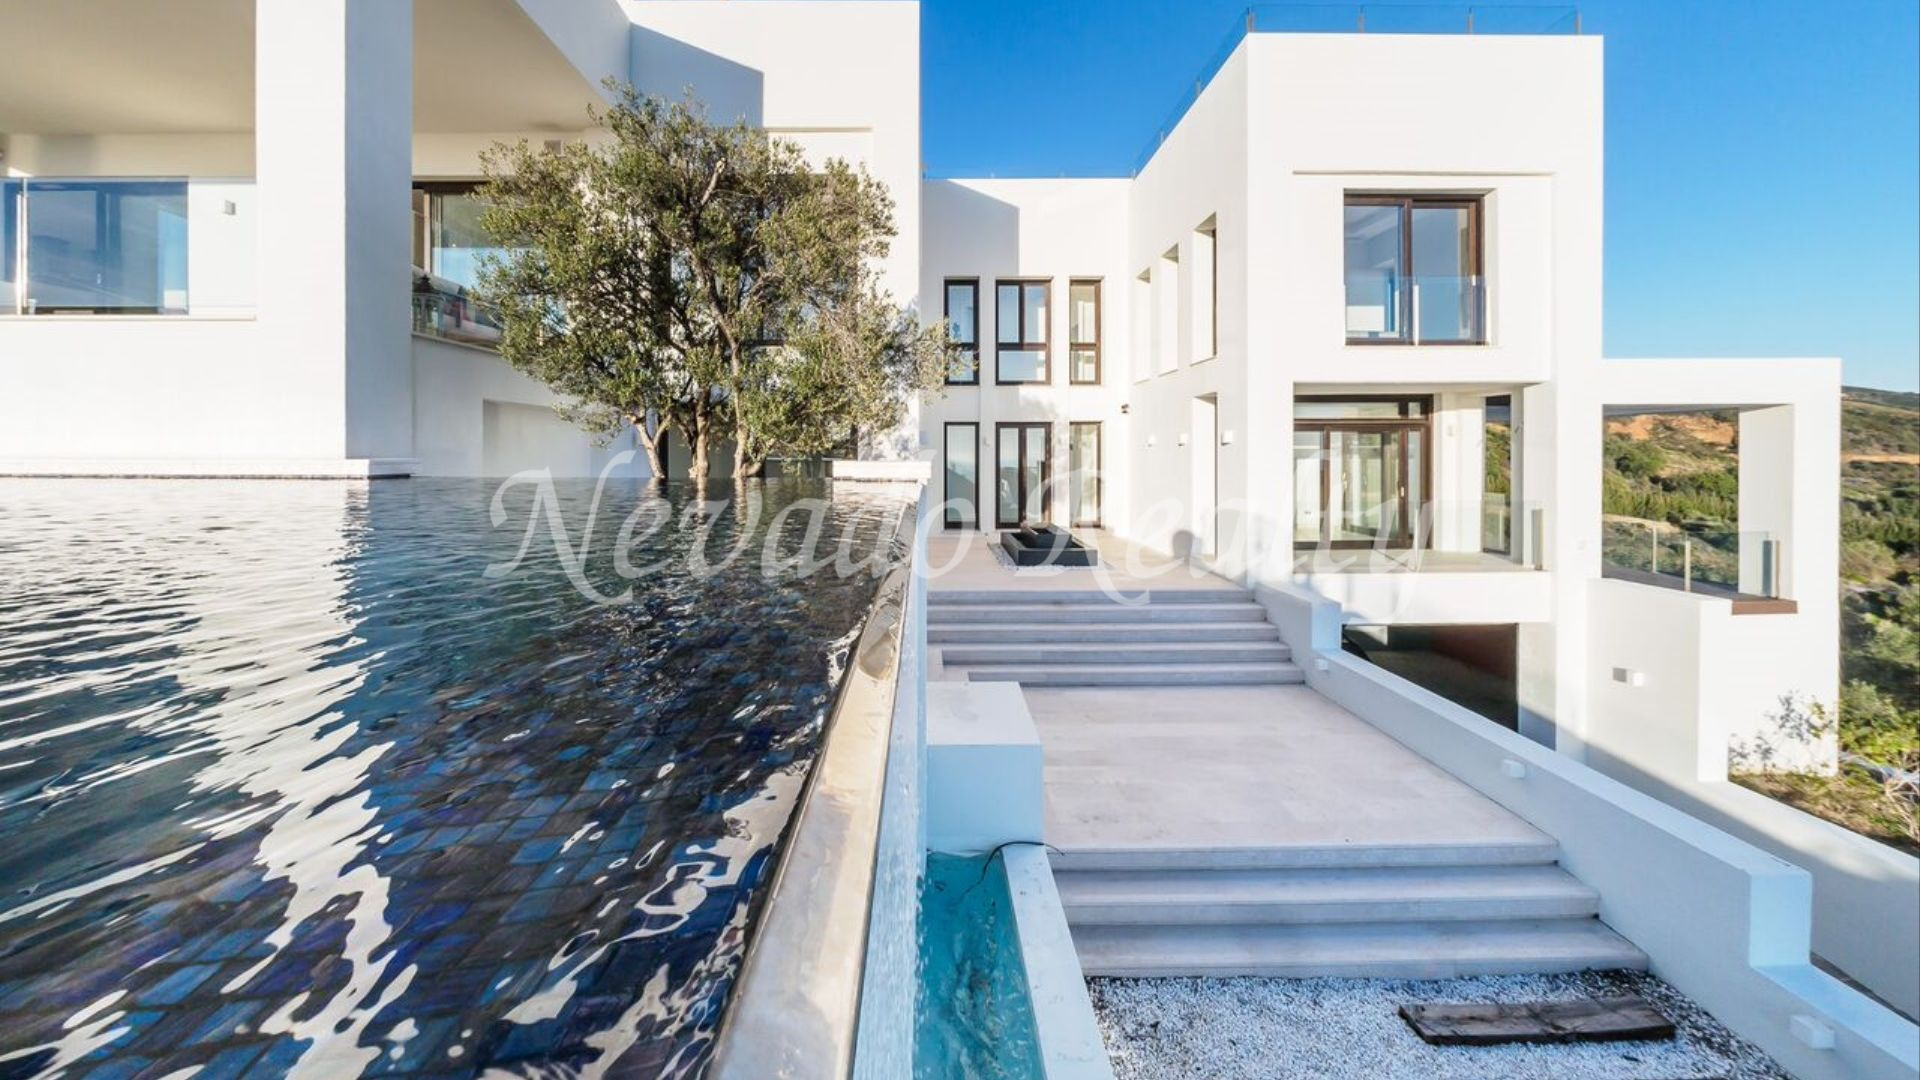 Breathtaking views, newly built villa in Altos de los Monteros